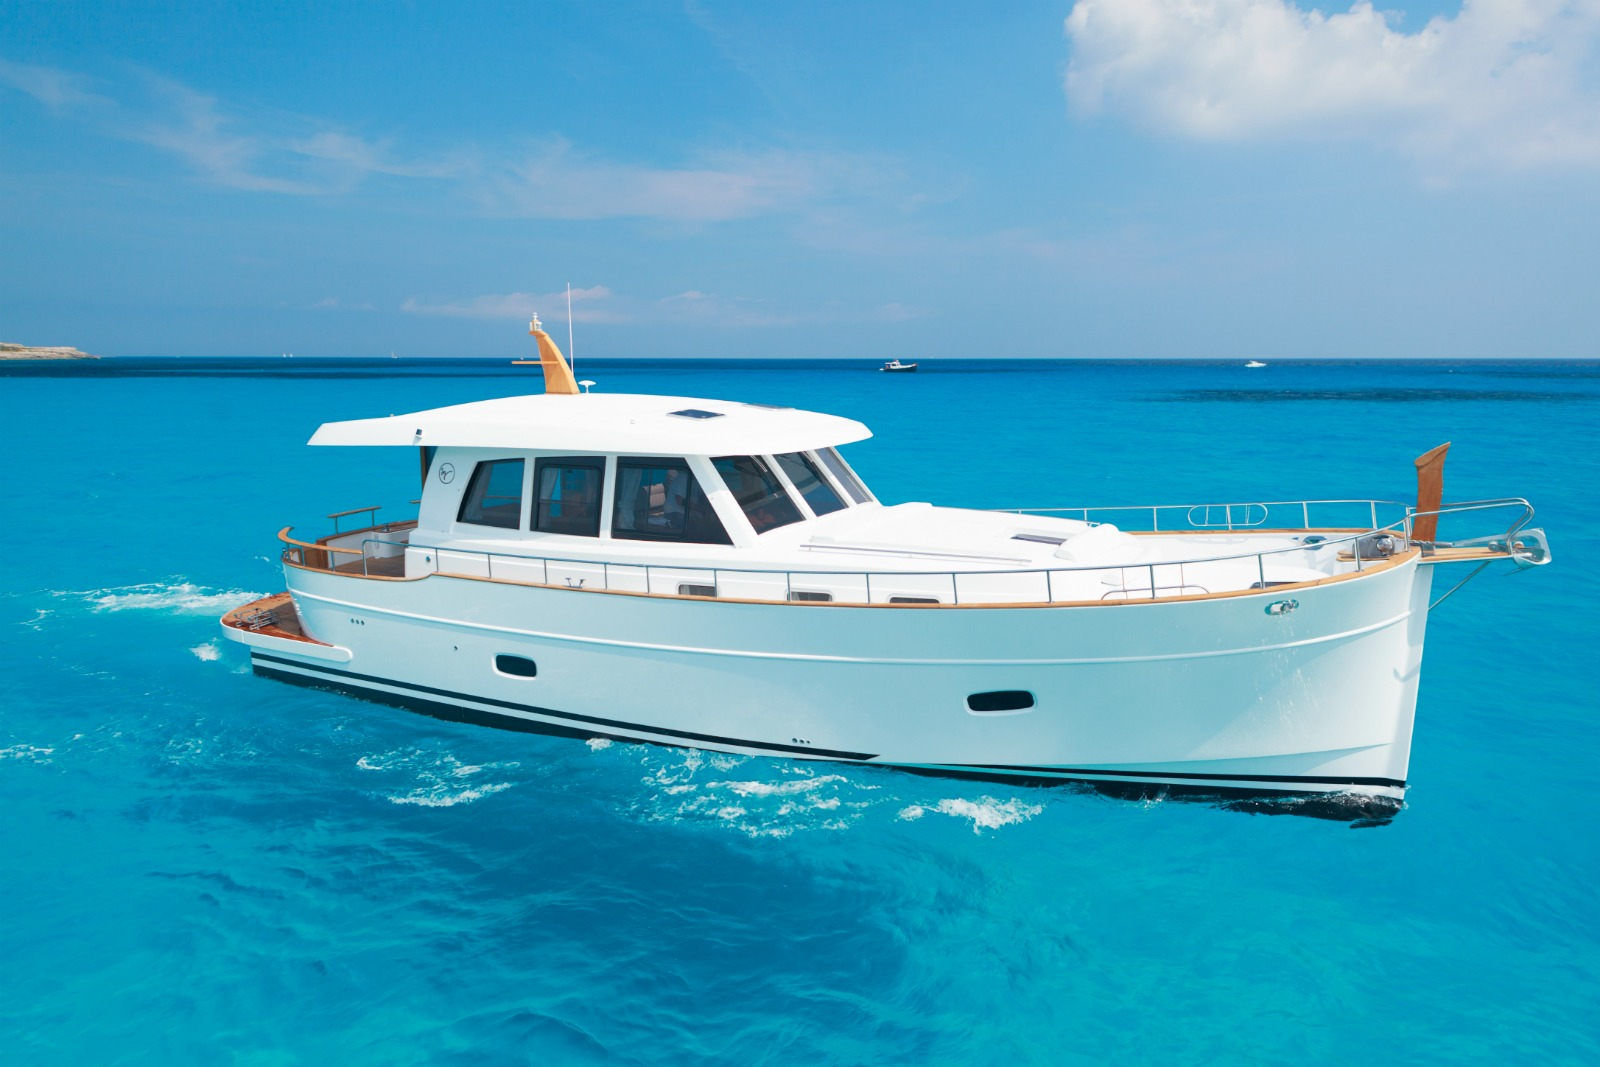 Minorca Islander 54 yacht for sale - Profile